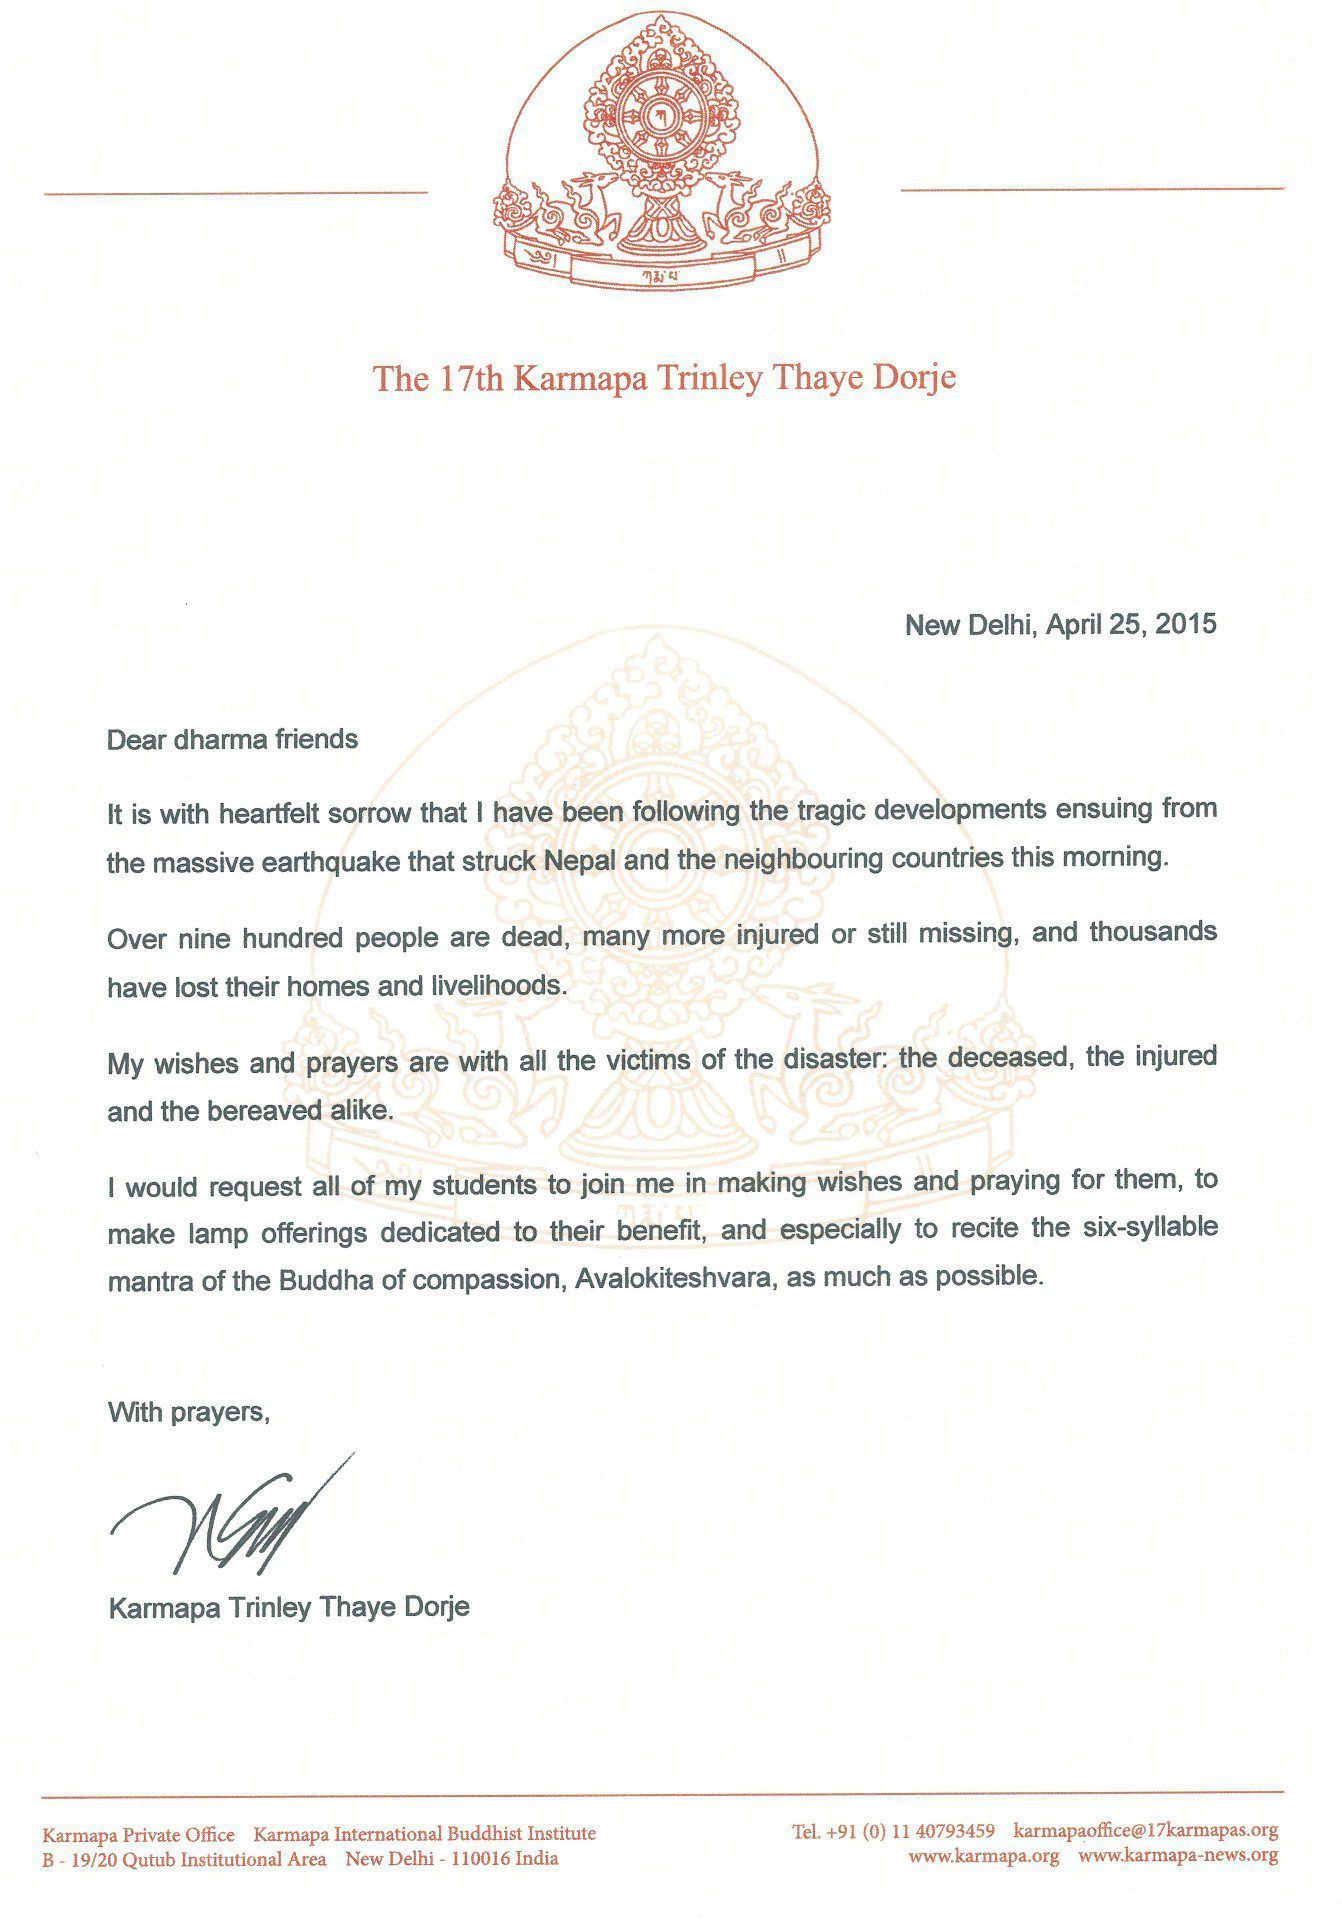 Articles and letters the 17th karmapa official website of thaye condolence letter regarding the earthquake in nepal april 2015 spiritdancerdesigns Choice Image